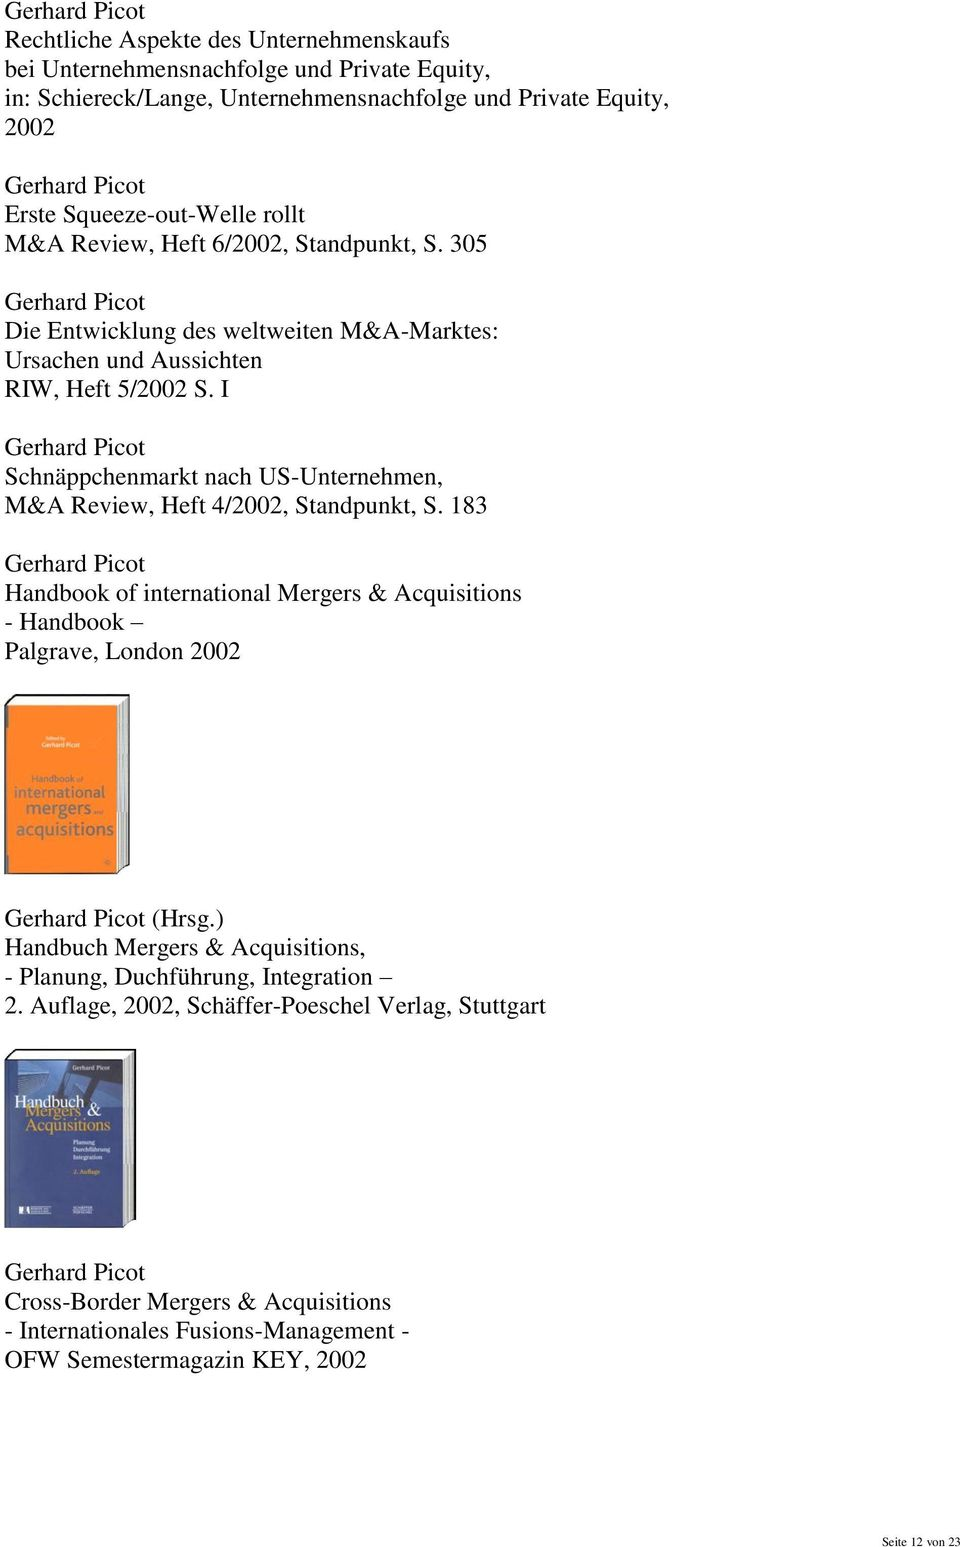 I Schnäppchenmarkt nach US-Unternehmen, M&A Review, Heft 4/2002, Standpunkt, S. 183 Handbook of international Mergers & Acquisitions - Handbook Palgrave, London 2002 (Hrsg.